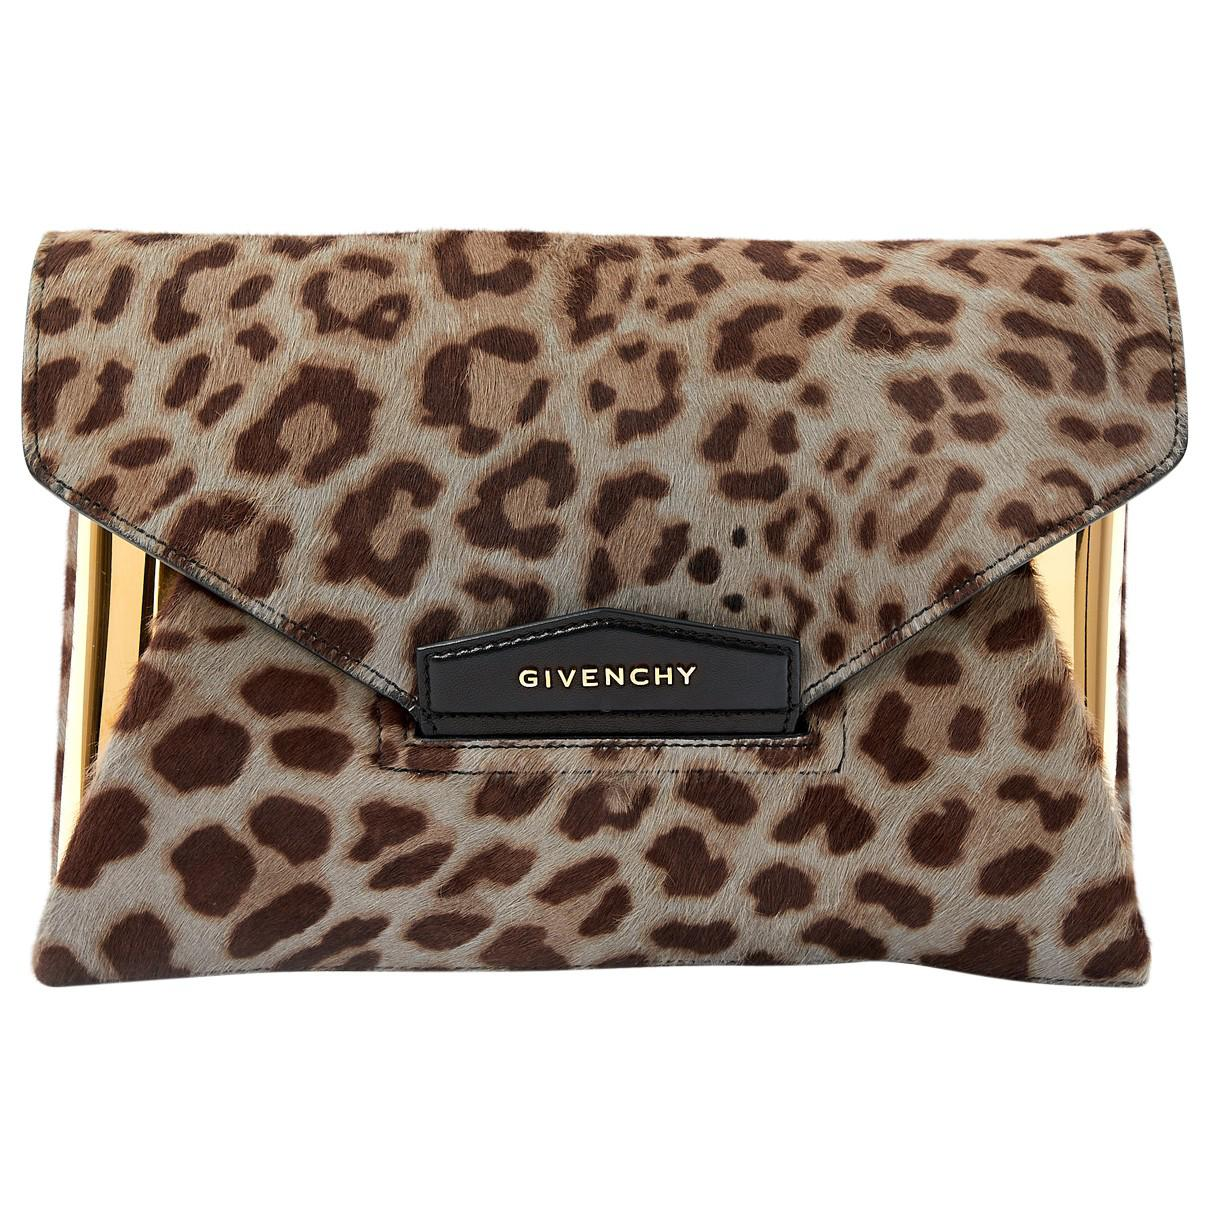 Givenchy Pre-owned - Pony-style calfskin clutch bag u0rb5l